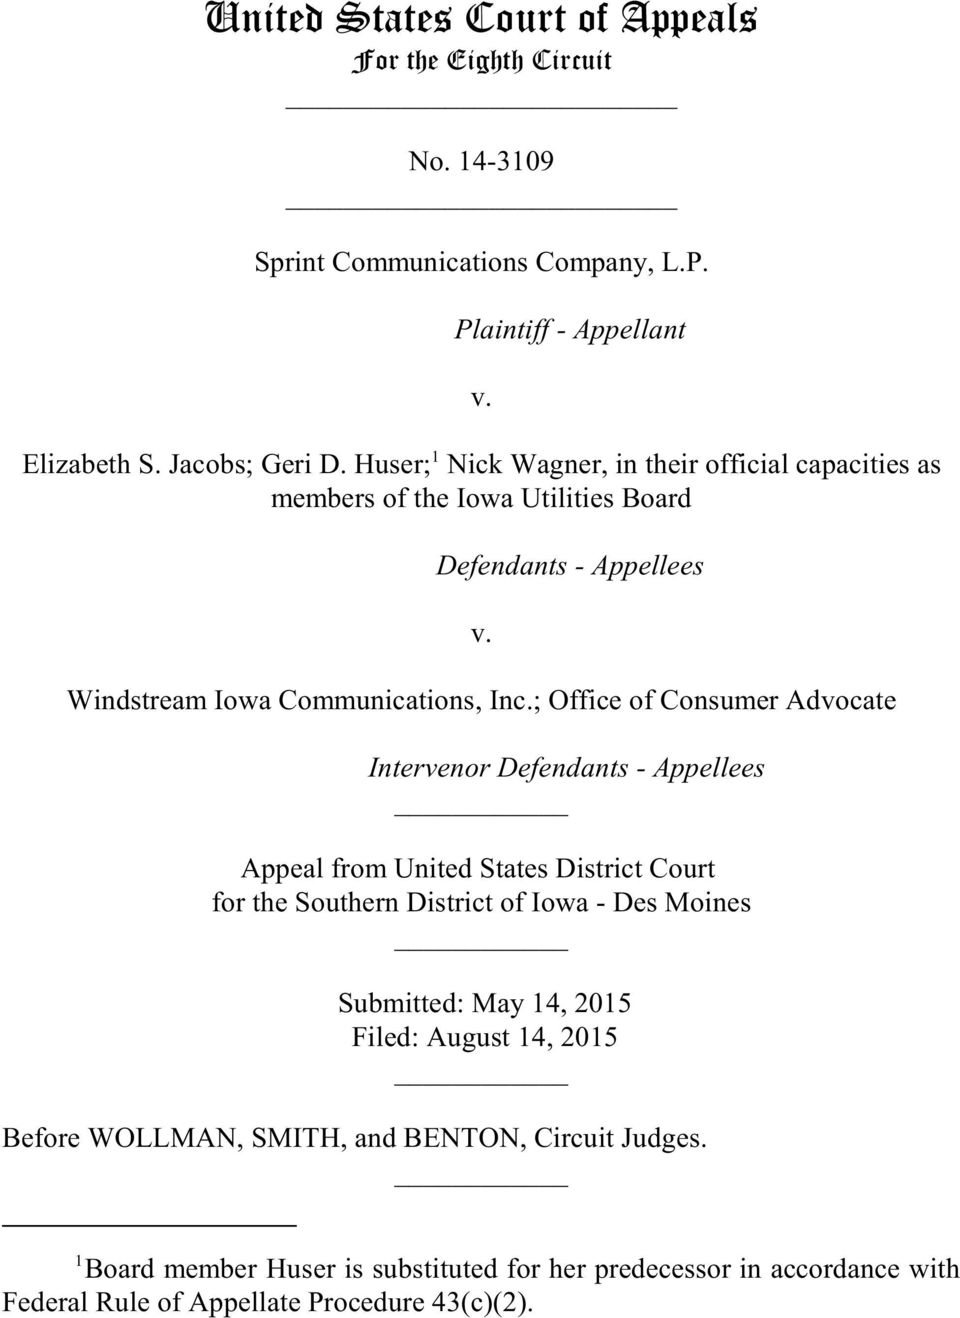 ; Office of Consumer Advocate lllllllllllllllllllllintervenor Defendants - Appellees Appeal from United States District Court for the Southern District of Iowa - Des Moines Submitted: